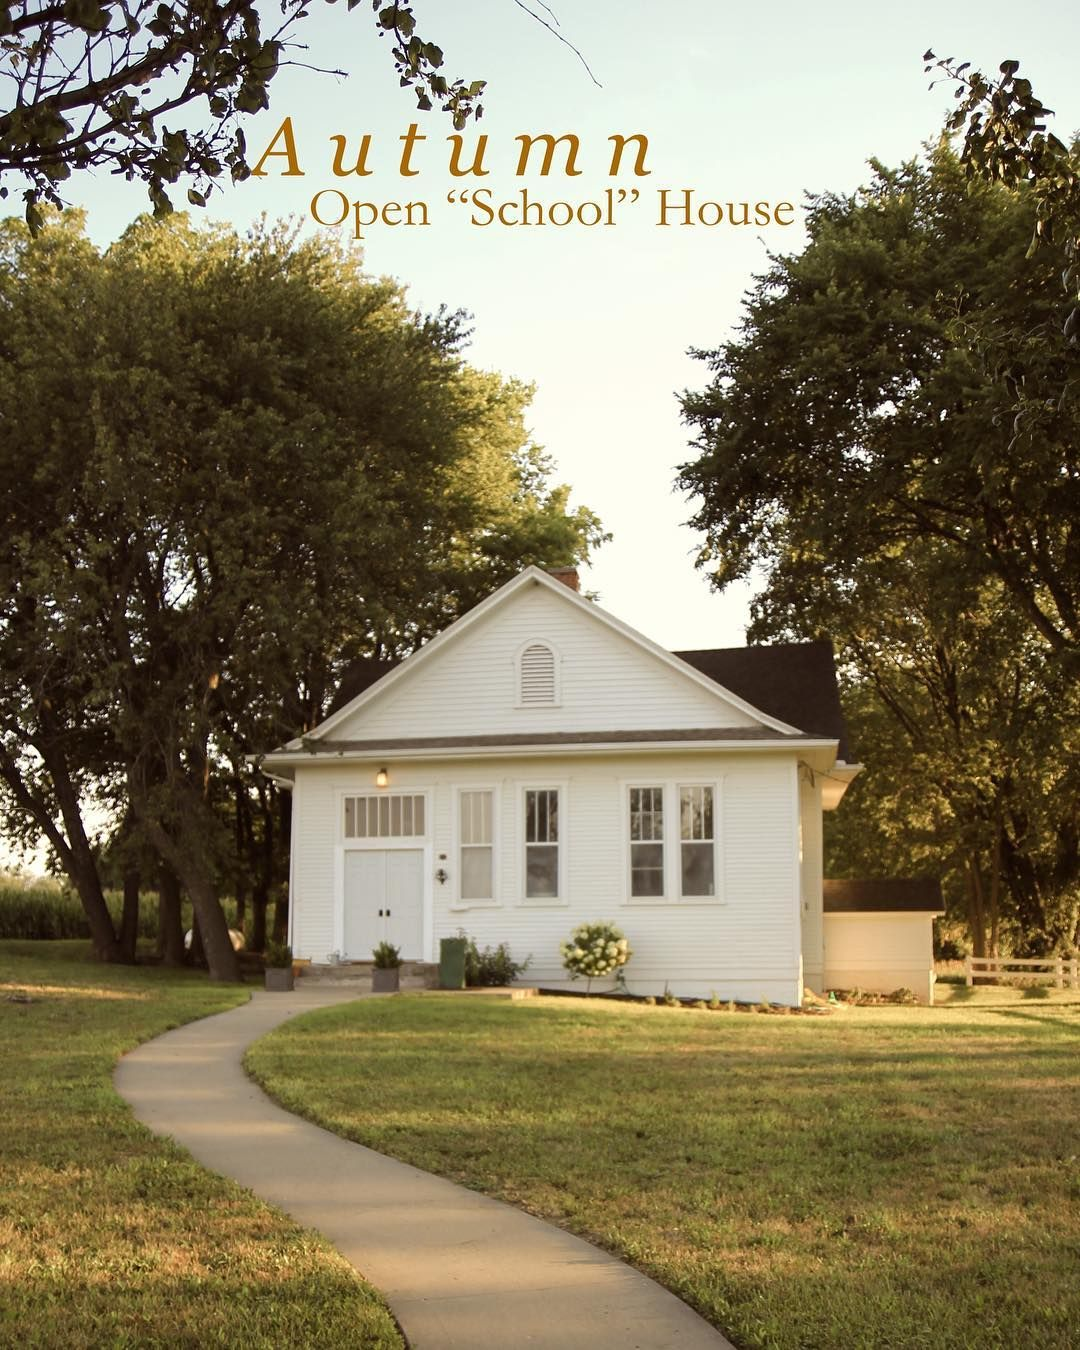 Saturday October 6th Lexington Missourithis Is So Exciting We Are Ready To Host Our First Open School House Event At The Homeschool Open House Lexington